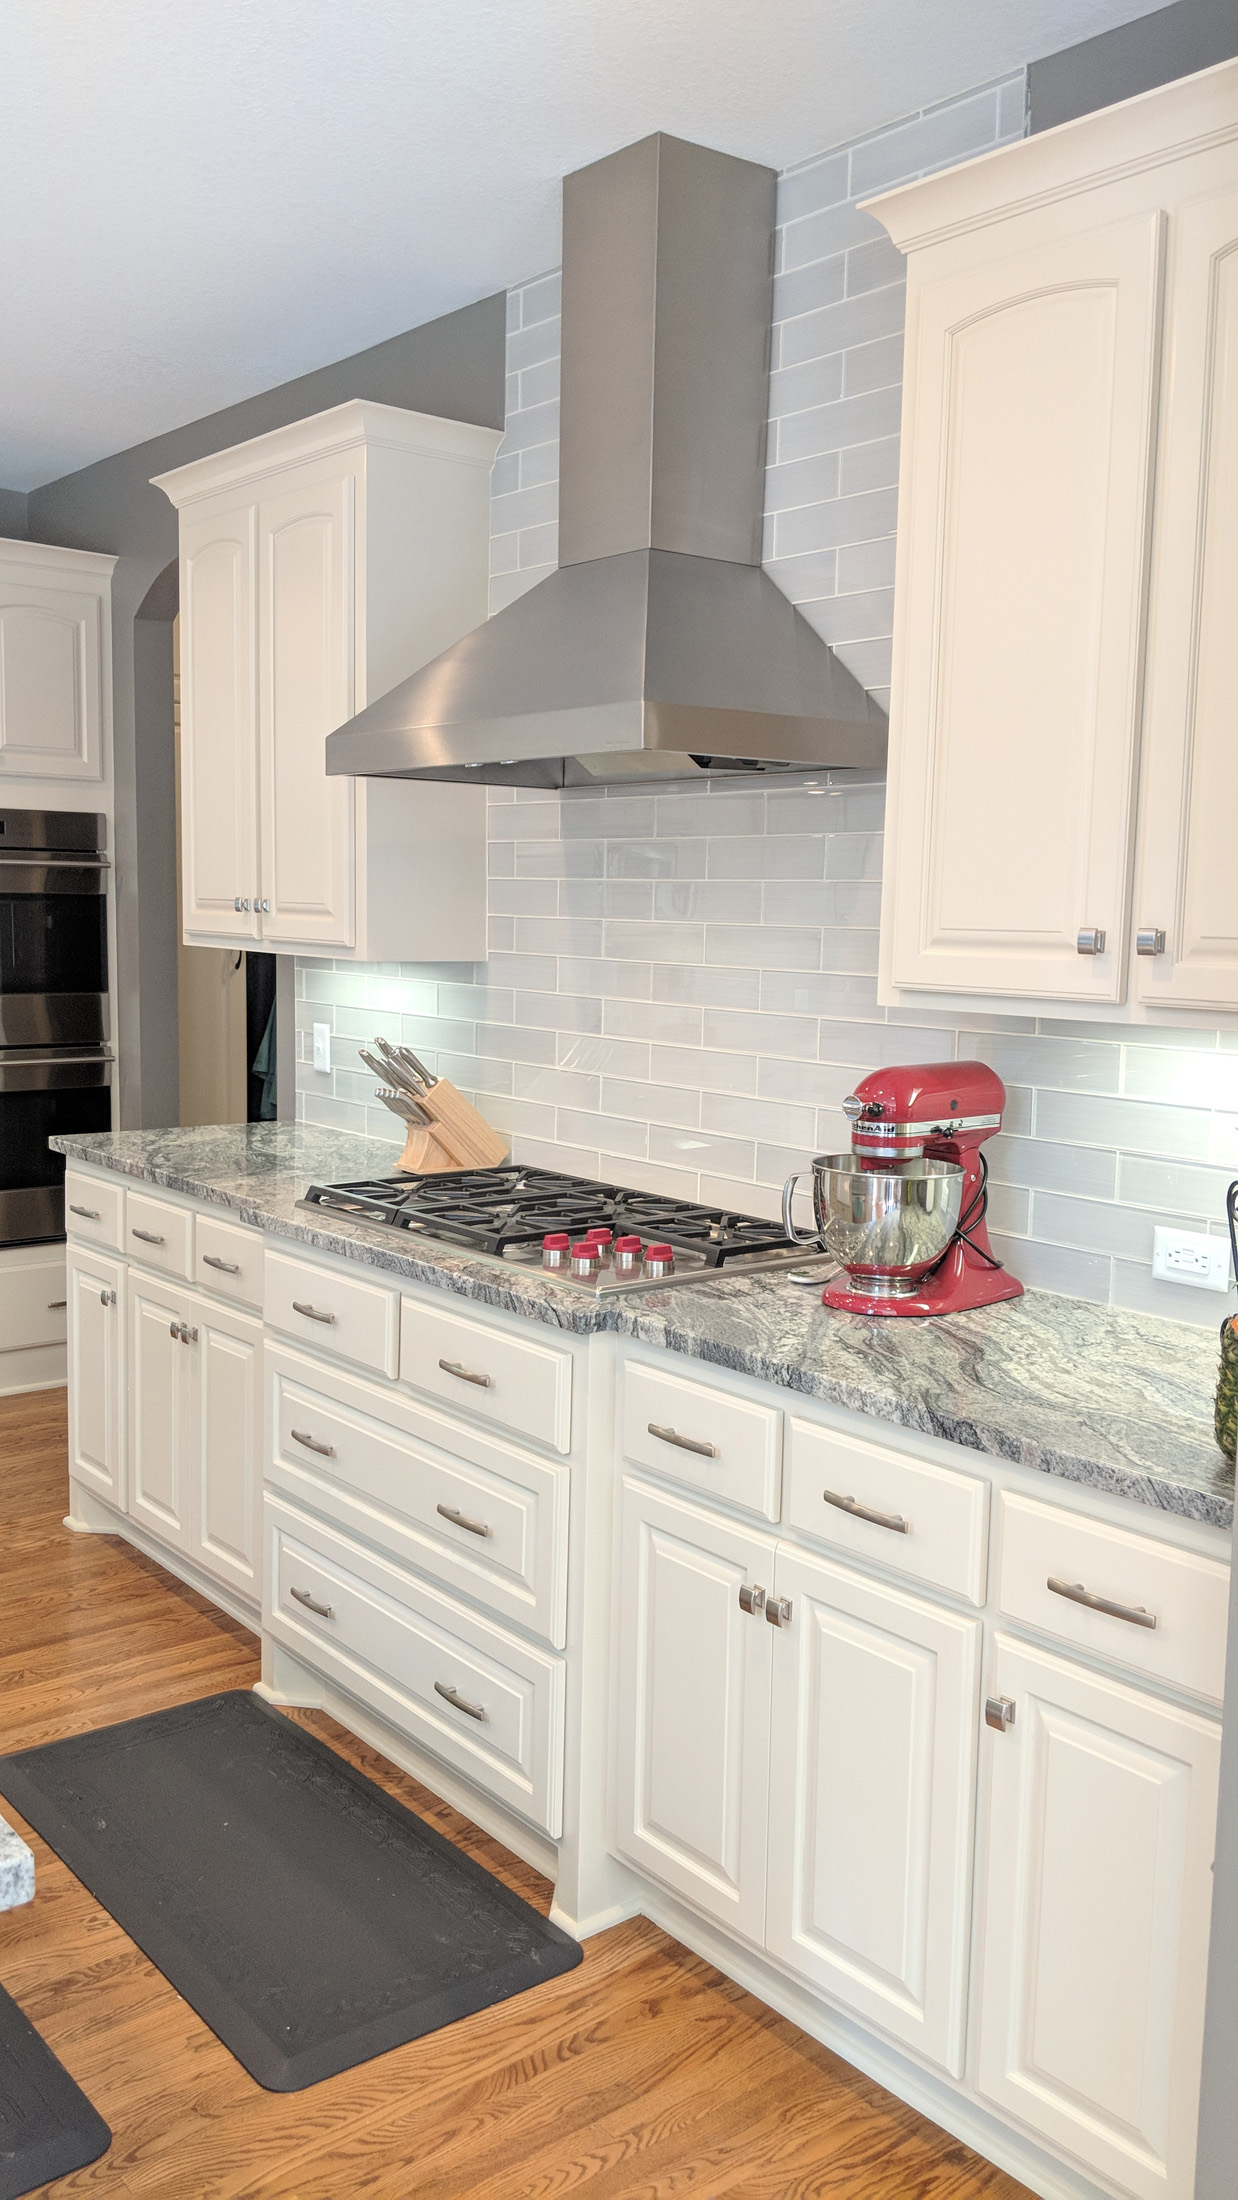 After - kitchen range wall new Granite tops  W/ glass subway tile